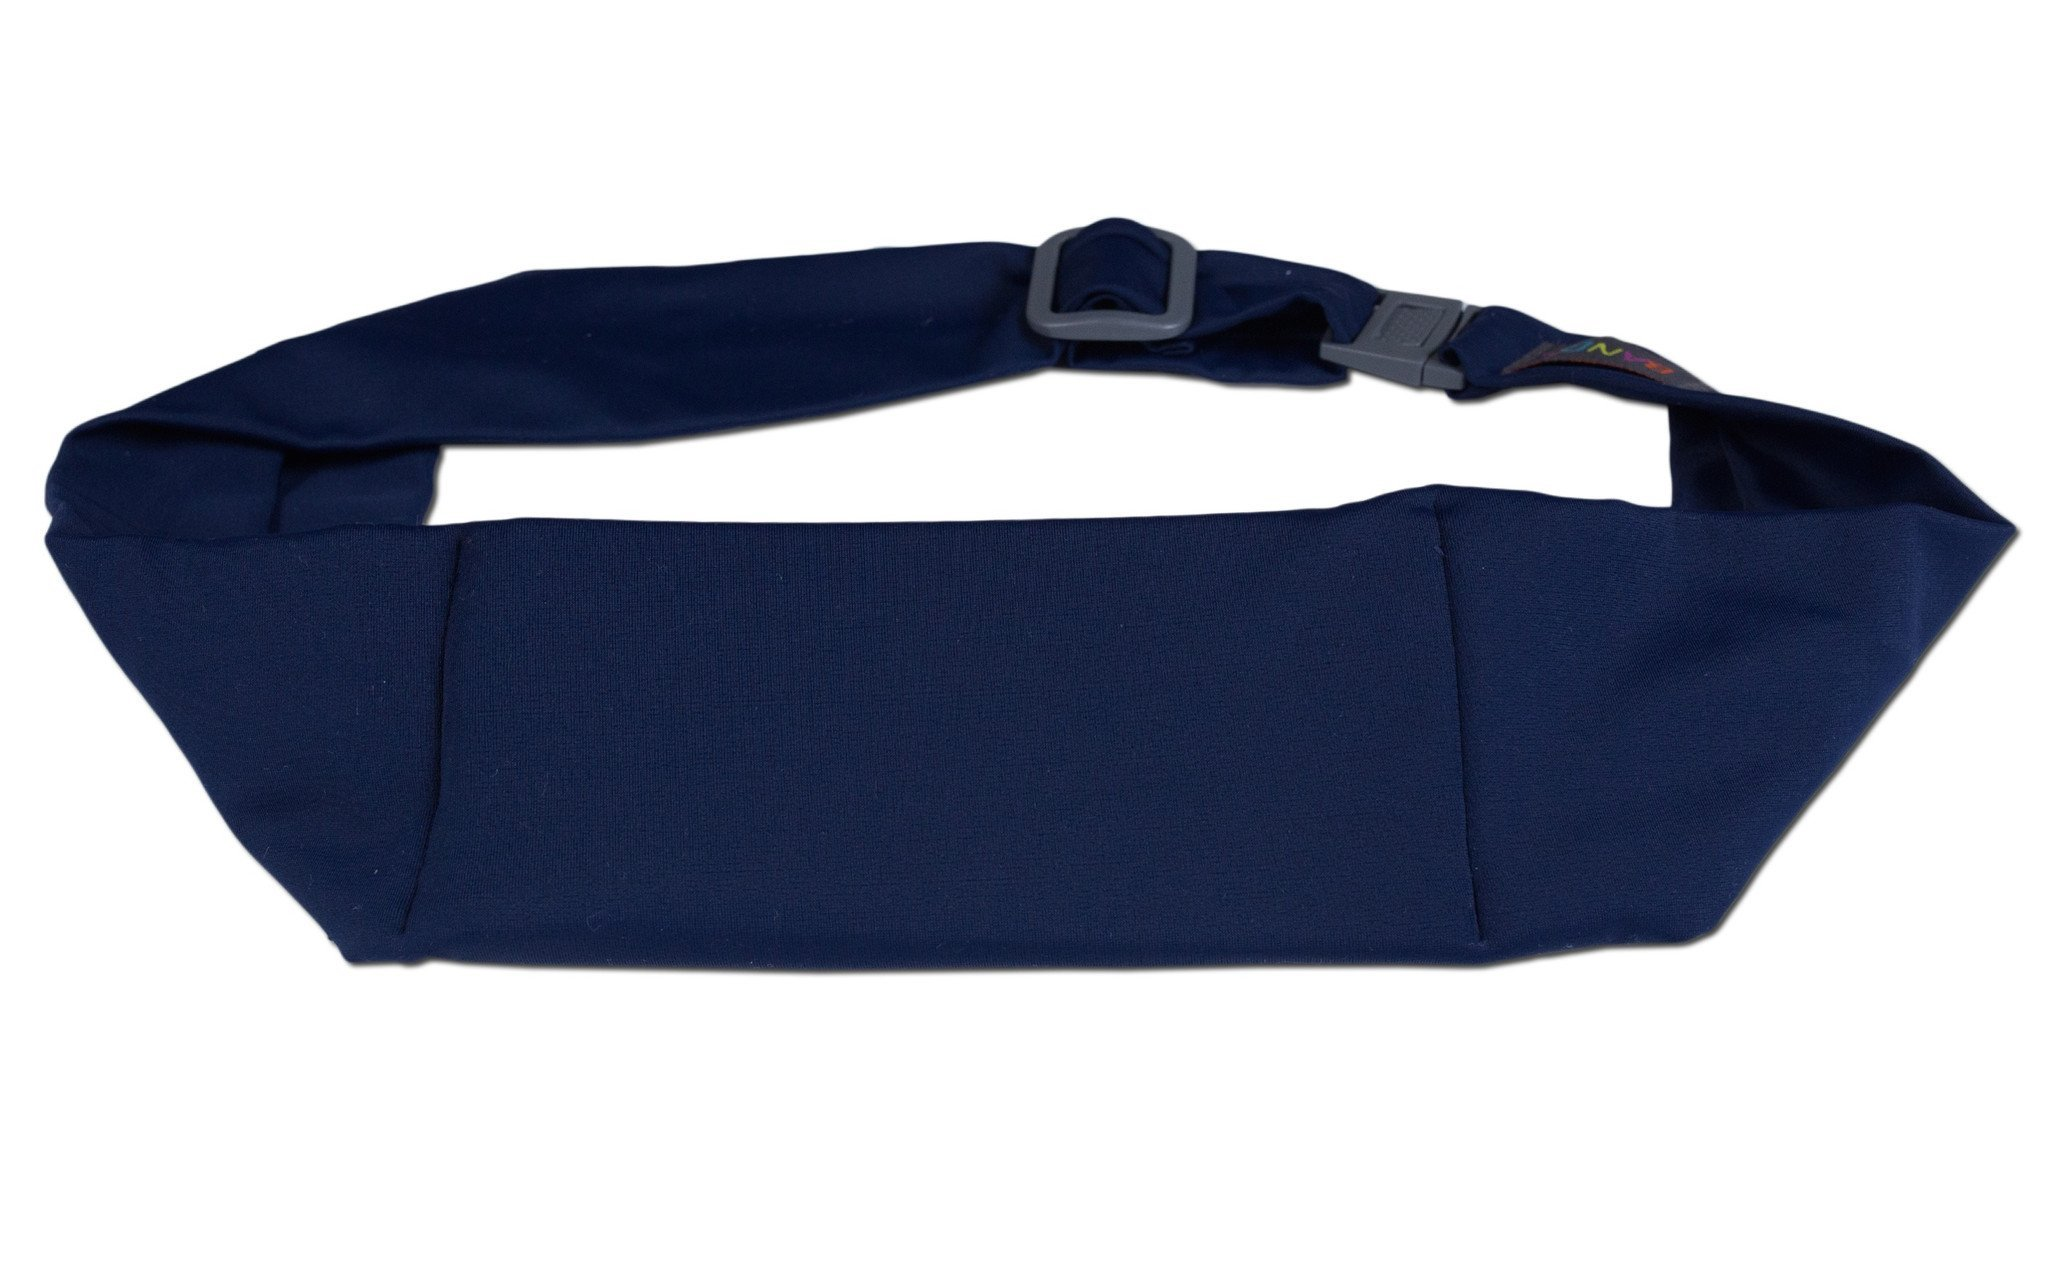 BANDI Unisex Secure Running Belt with Adjustable Straps and Clasp, Classic Size Pocket (Navy)